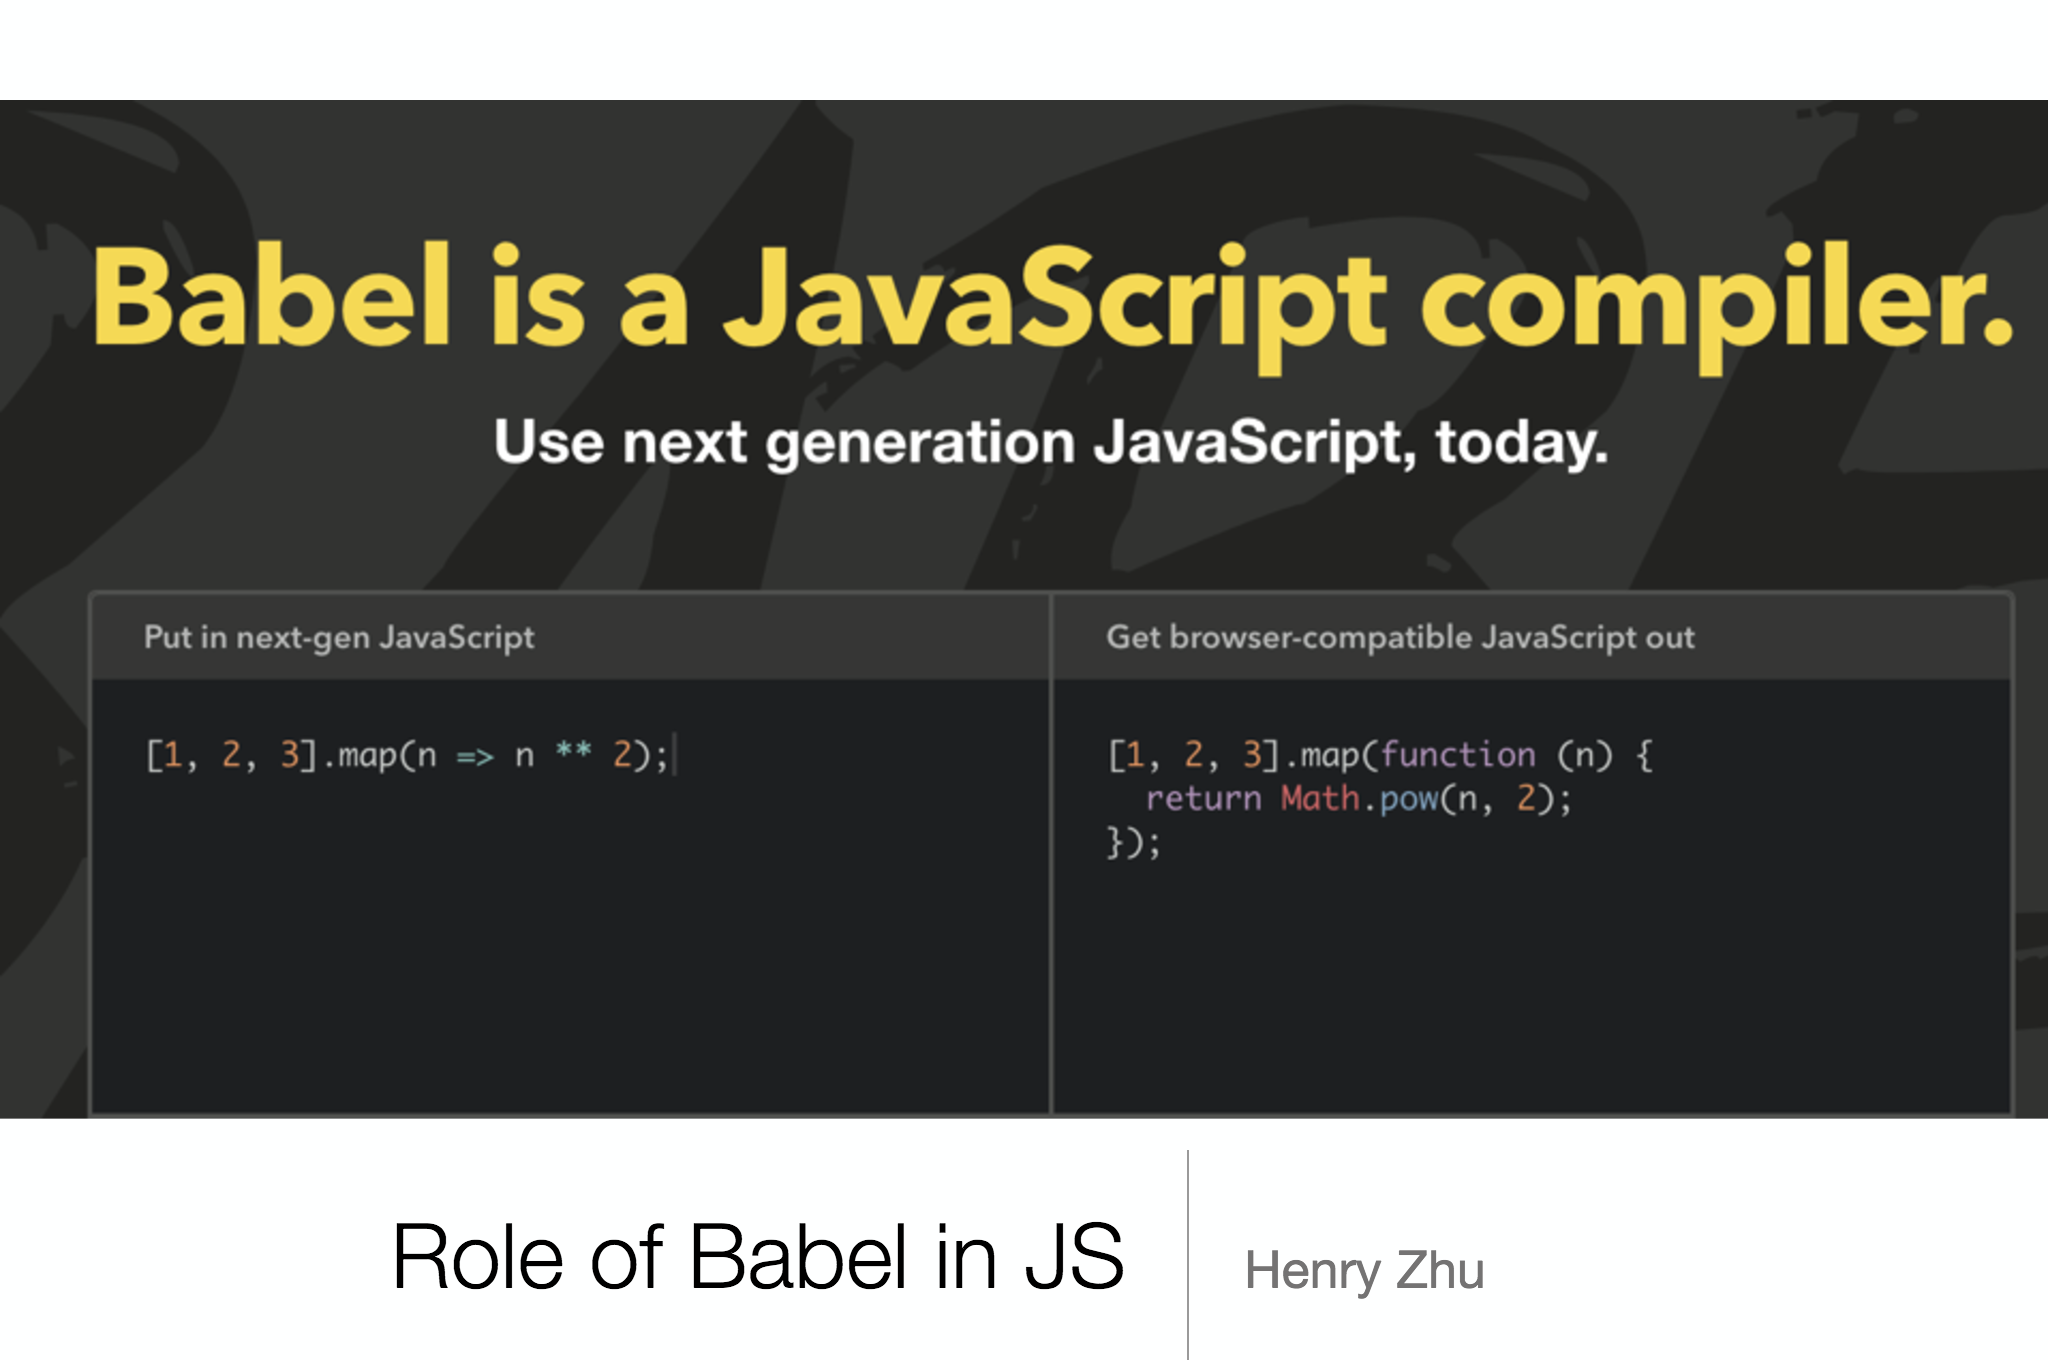 Role of Babel in JS